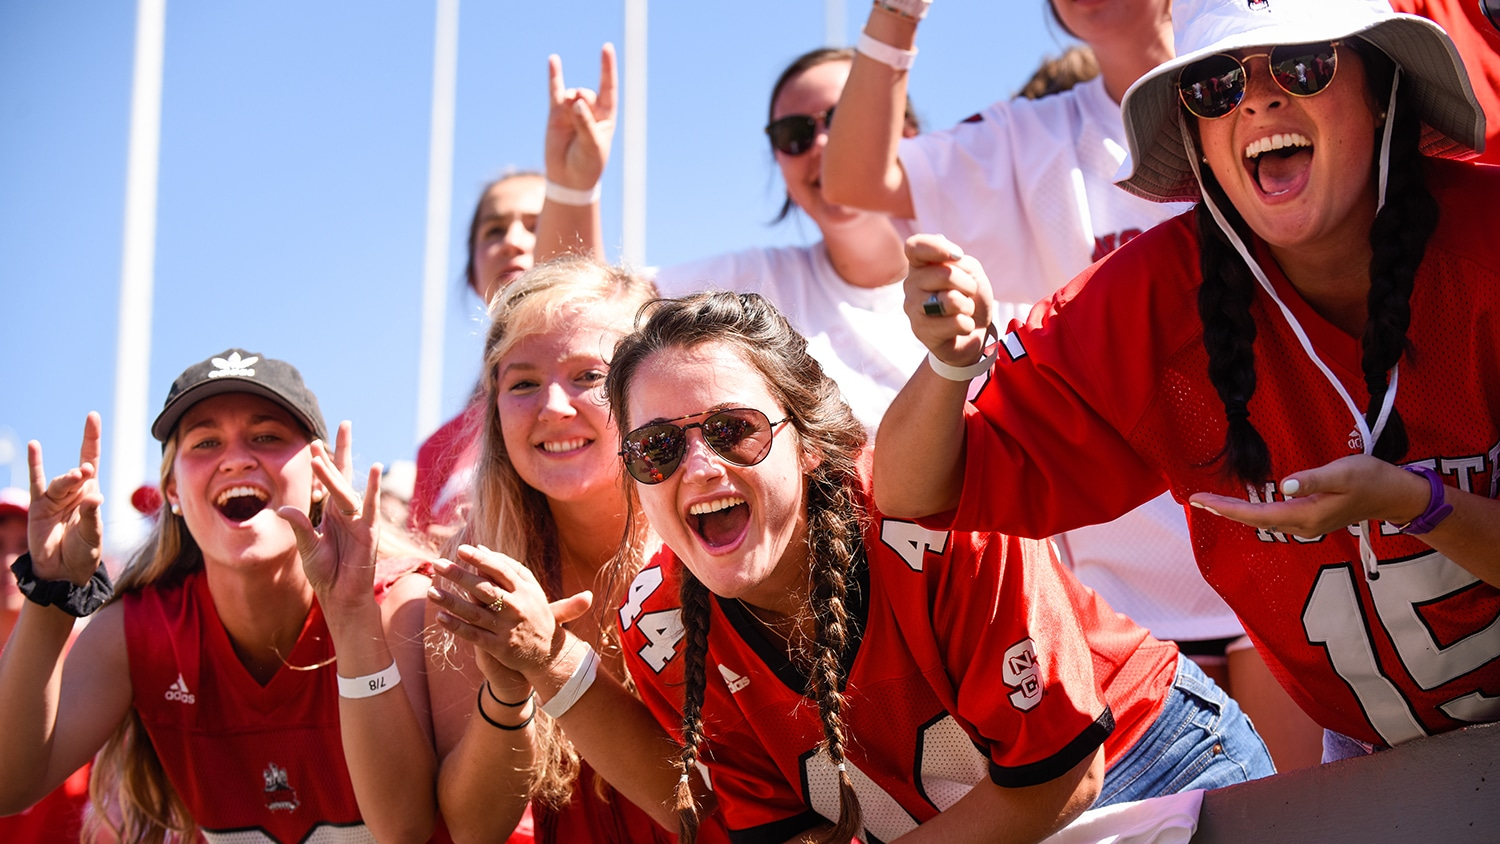 Students donning red jerseys cheer at an NC State football game.